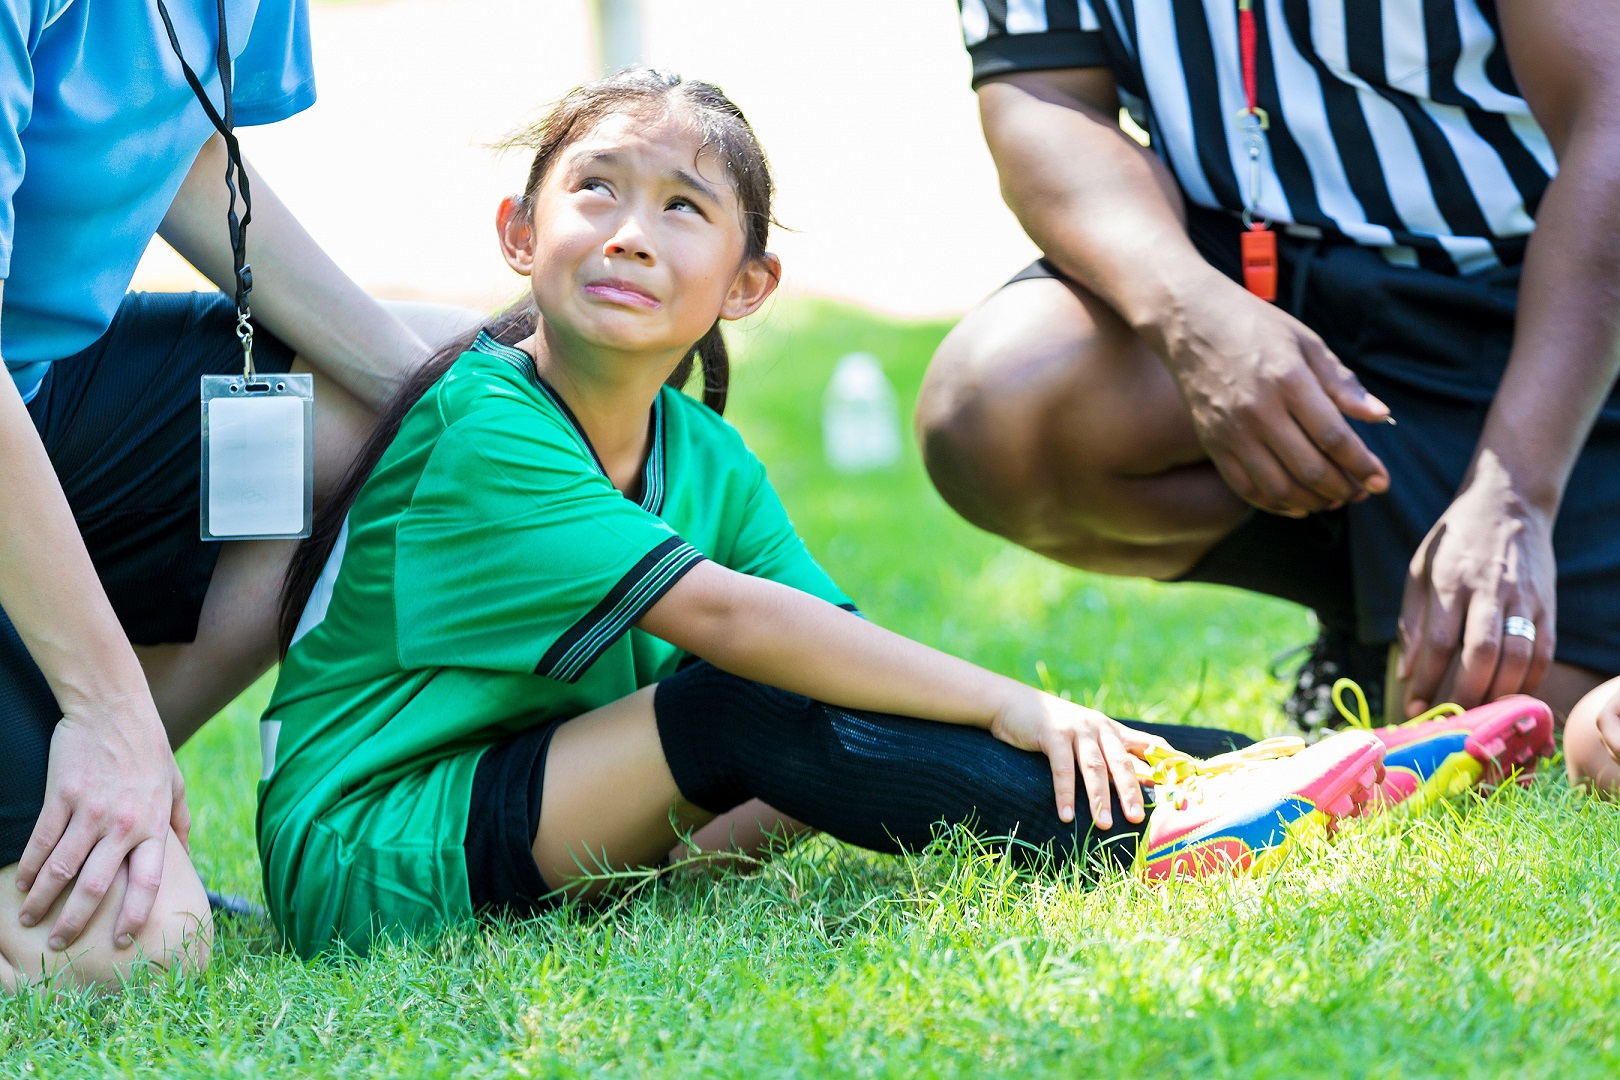 Young Asian Girl Crying Ankle Pain Soccer Injury